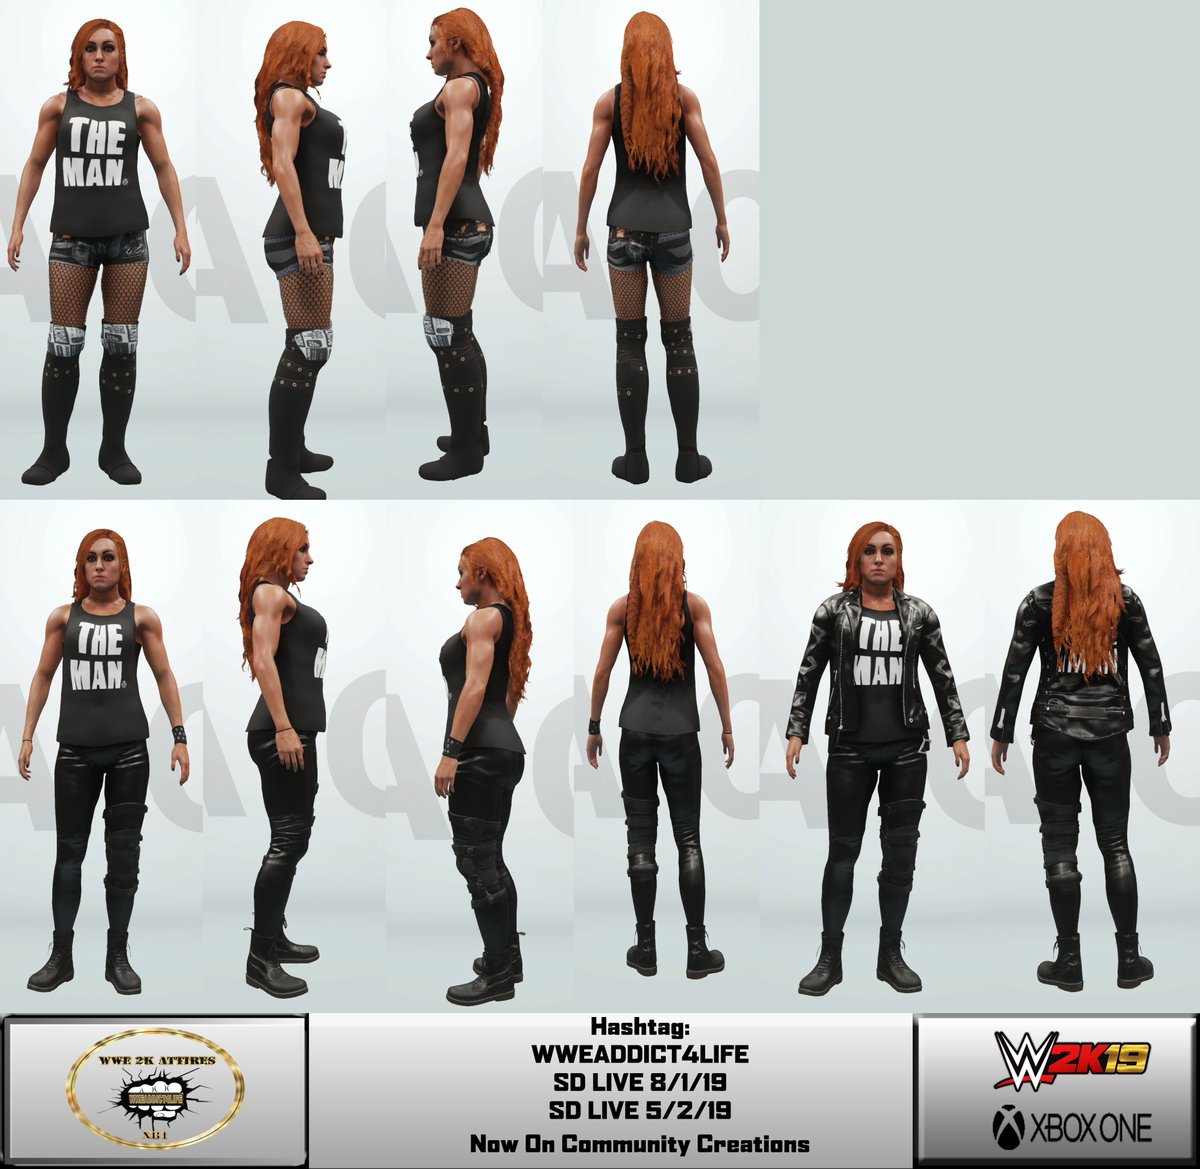 🎮 WWEADDICT4LIFE (XB1) |#WWE2K19|🎮's photo on #beckylynch